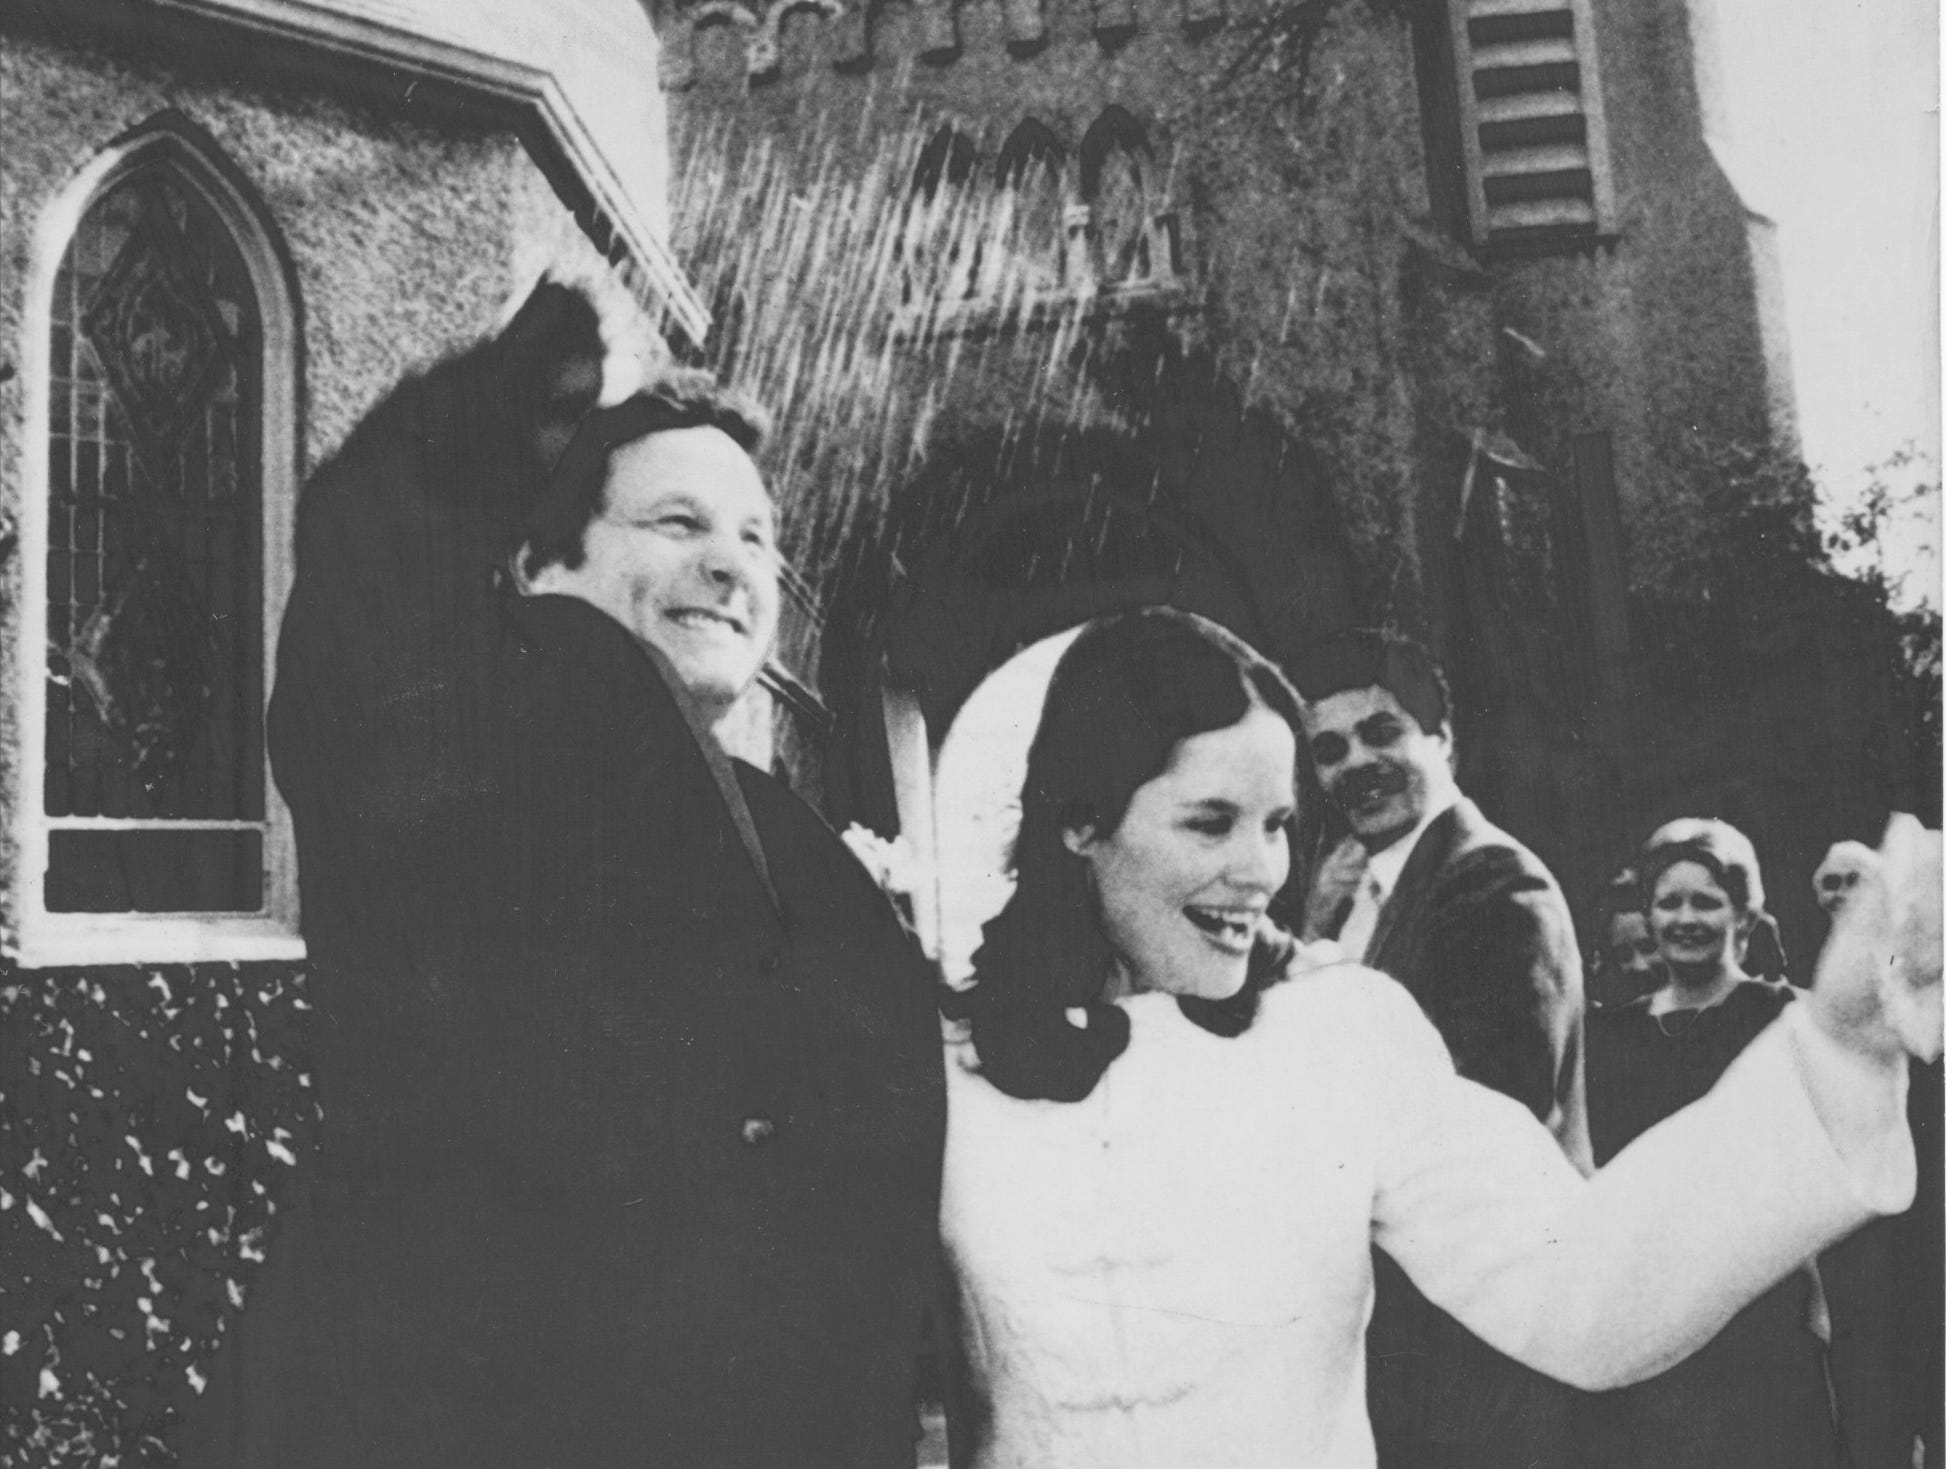 Washington-Former Indiana Senator Birch Bayh and his new bride Katherine Halpin, director of news information at ABC, hurry to avoid rice as they leave St. Alban's Chapel at the National Cathedral in Washington Thursday shortly after they were married. (12/24/1981)